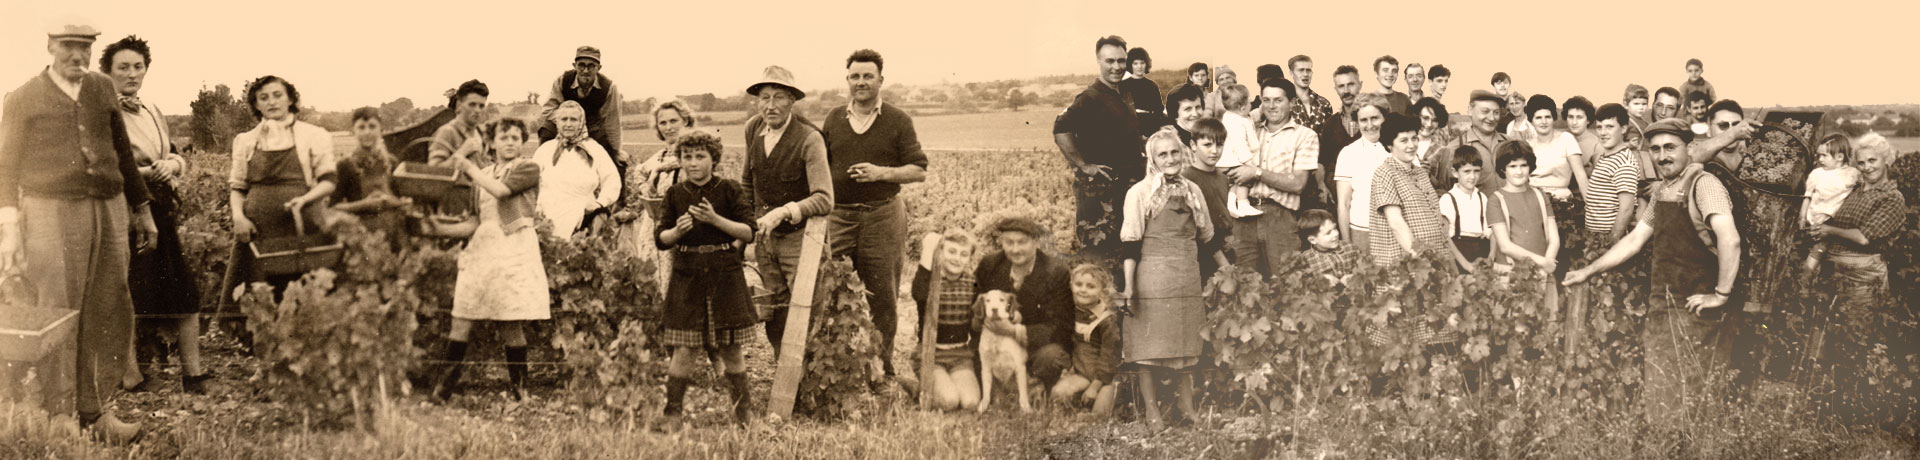 Famille Domaine Barillot Pouilly-Fumé